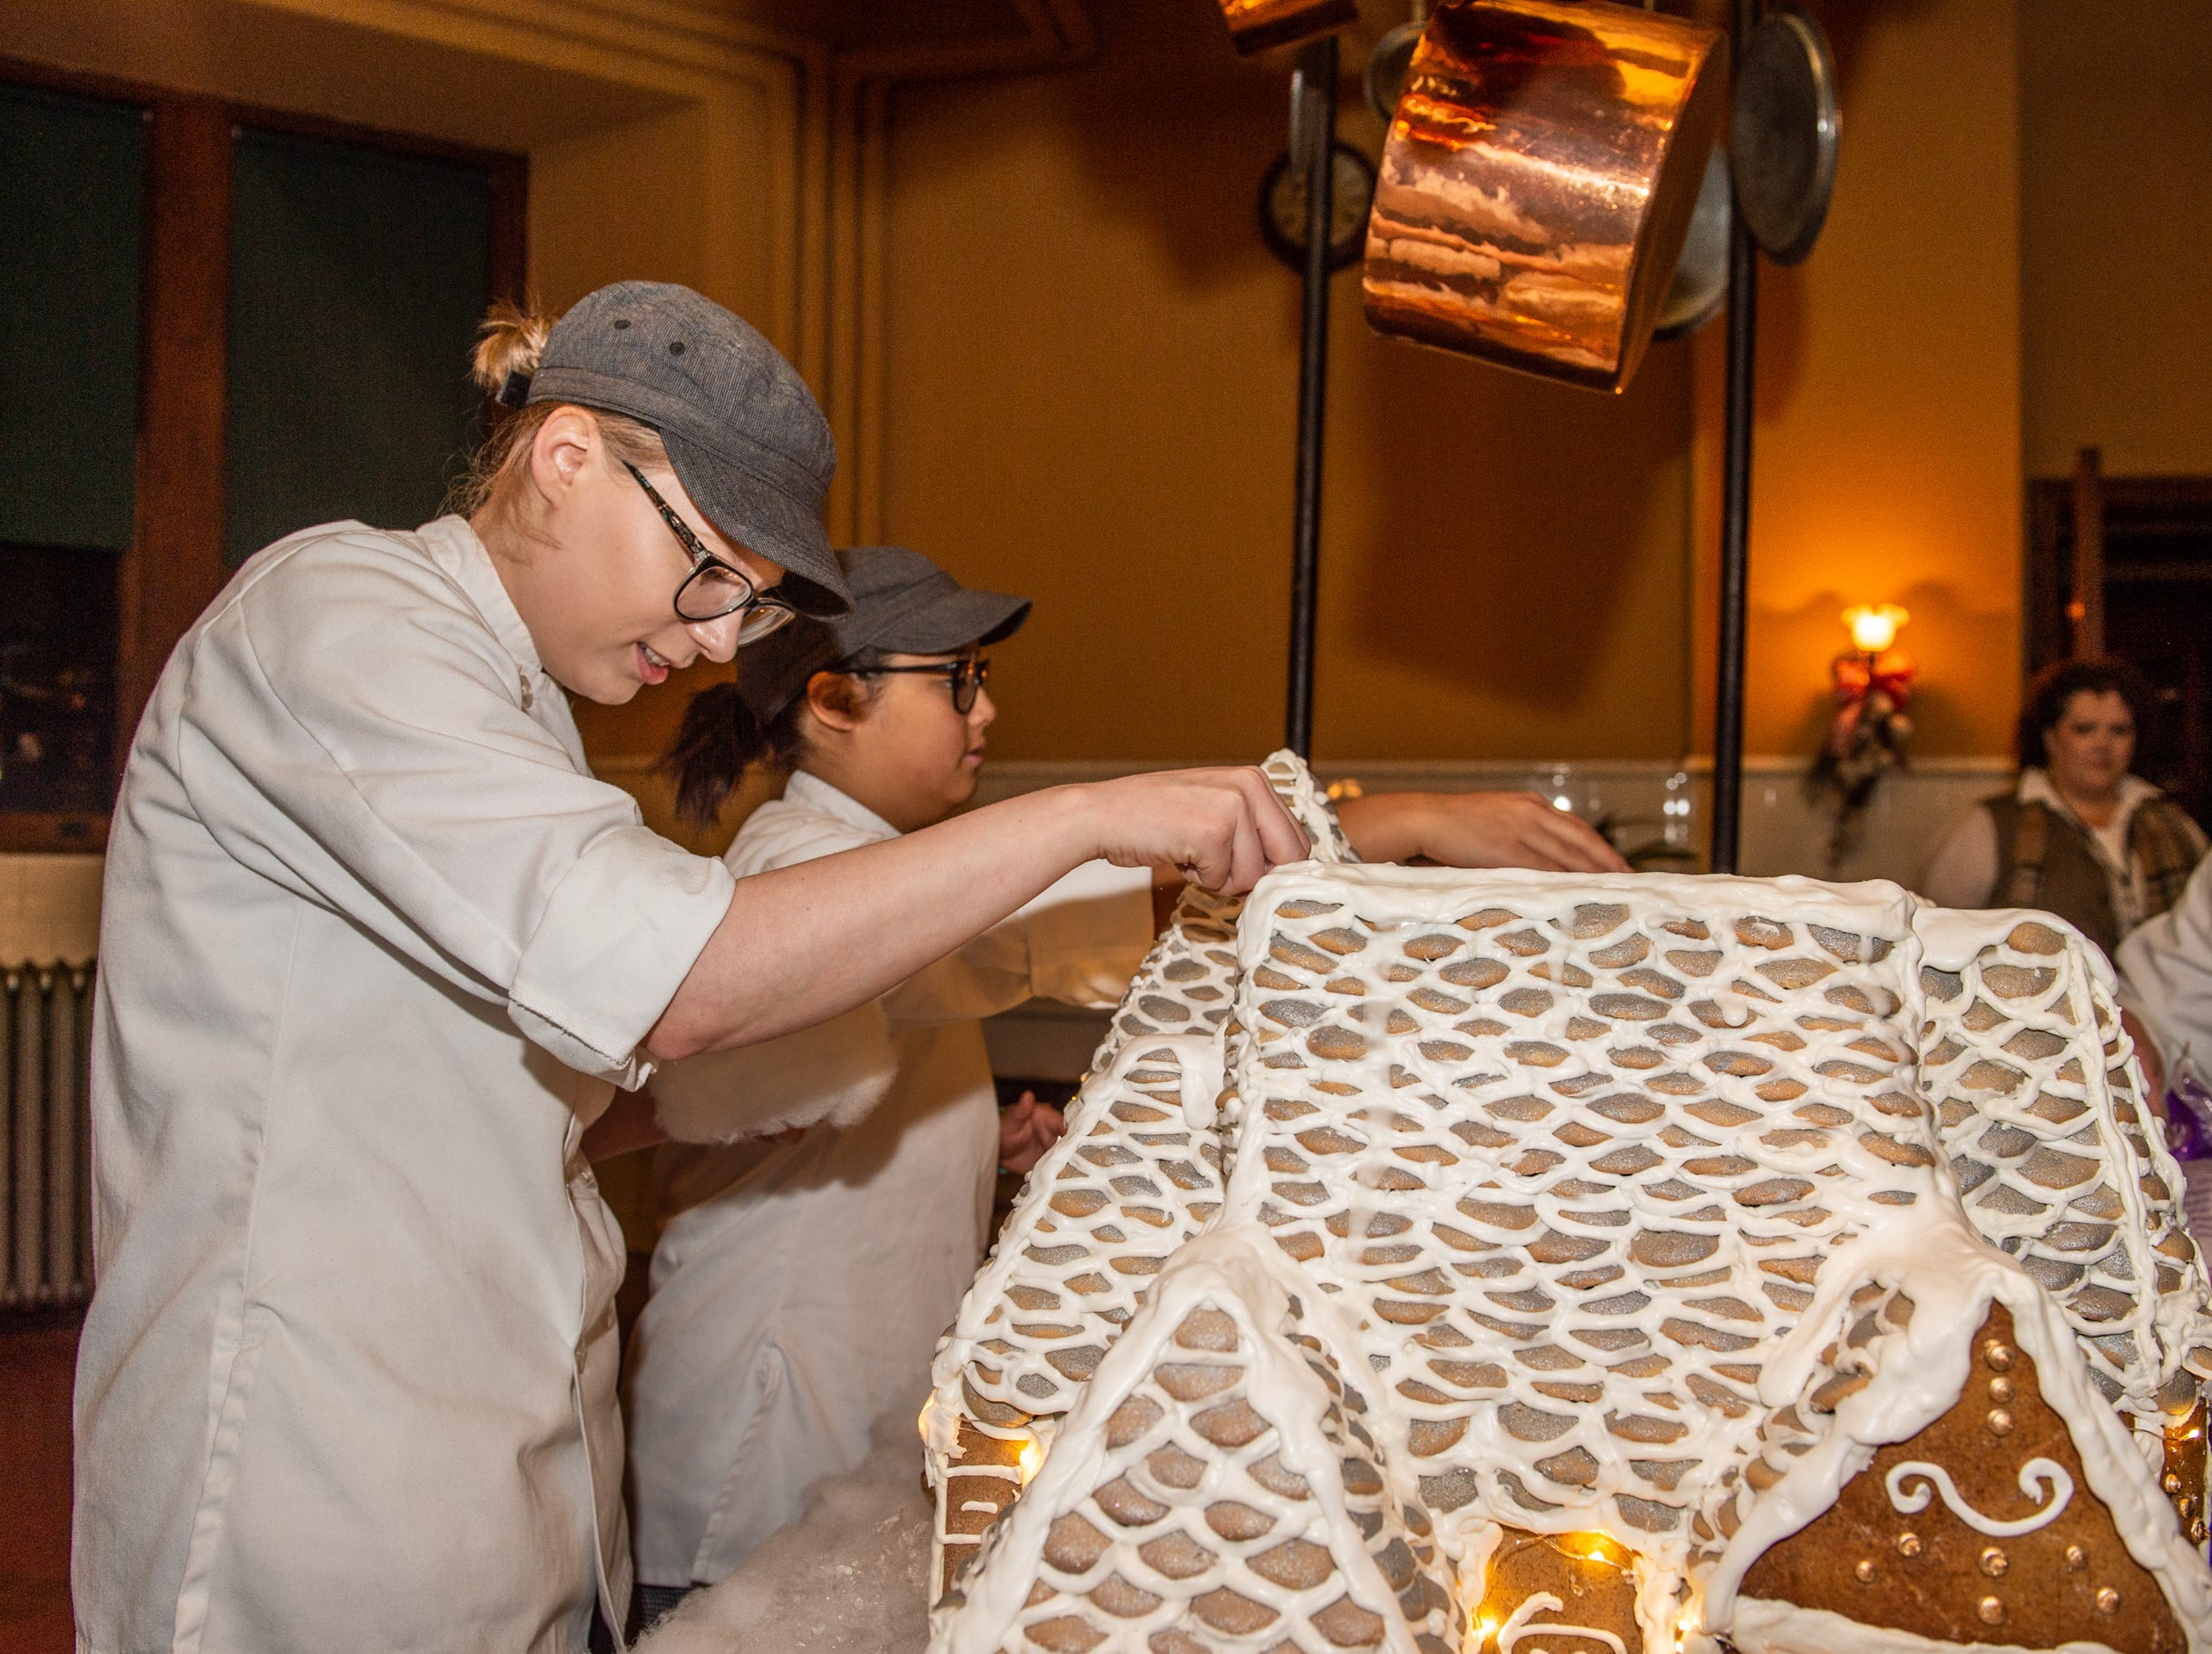 Biltmore pastry demi chef Megan Moorhead, left, and pastry cook Kayla Breedlove help put the finishing touches on the gingerbread house in the Biltmore House kitchen on the morning of Nov. 2, 2018.